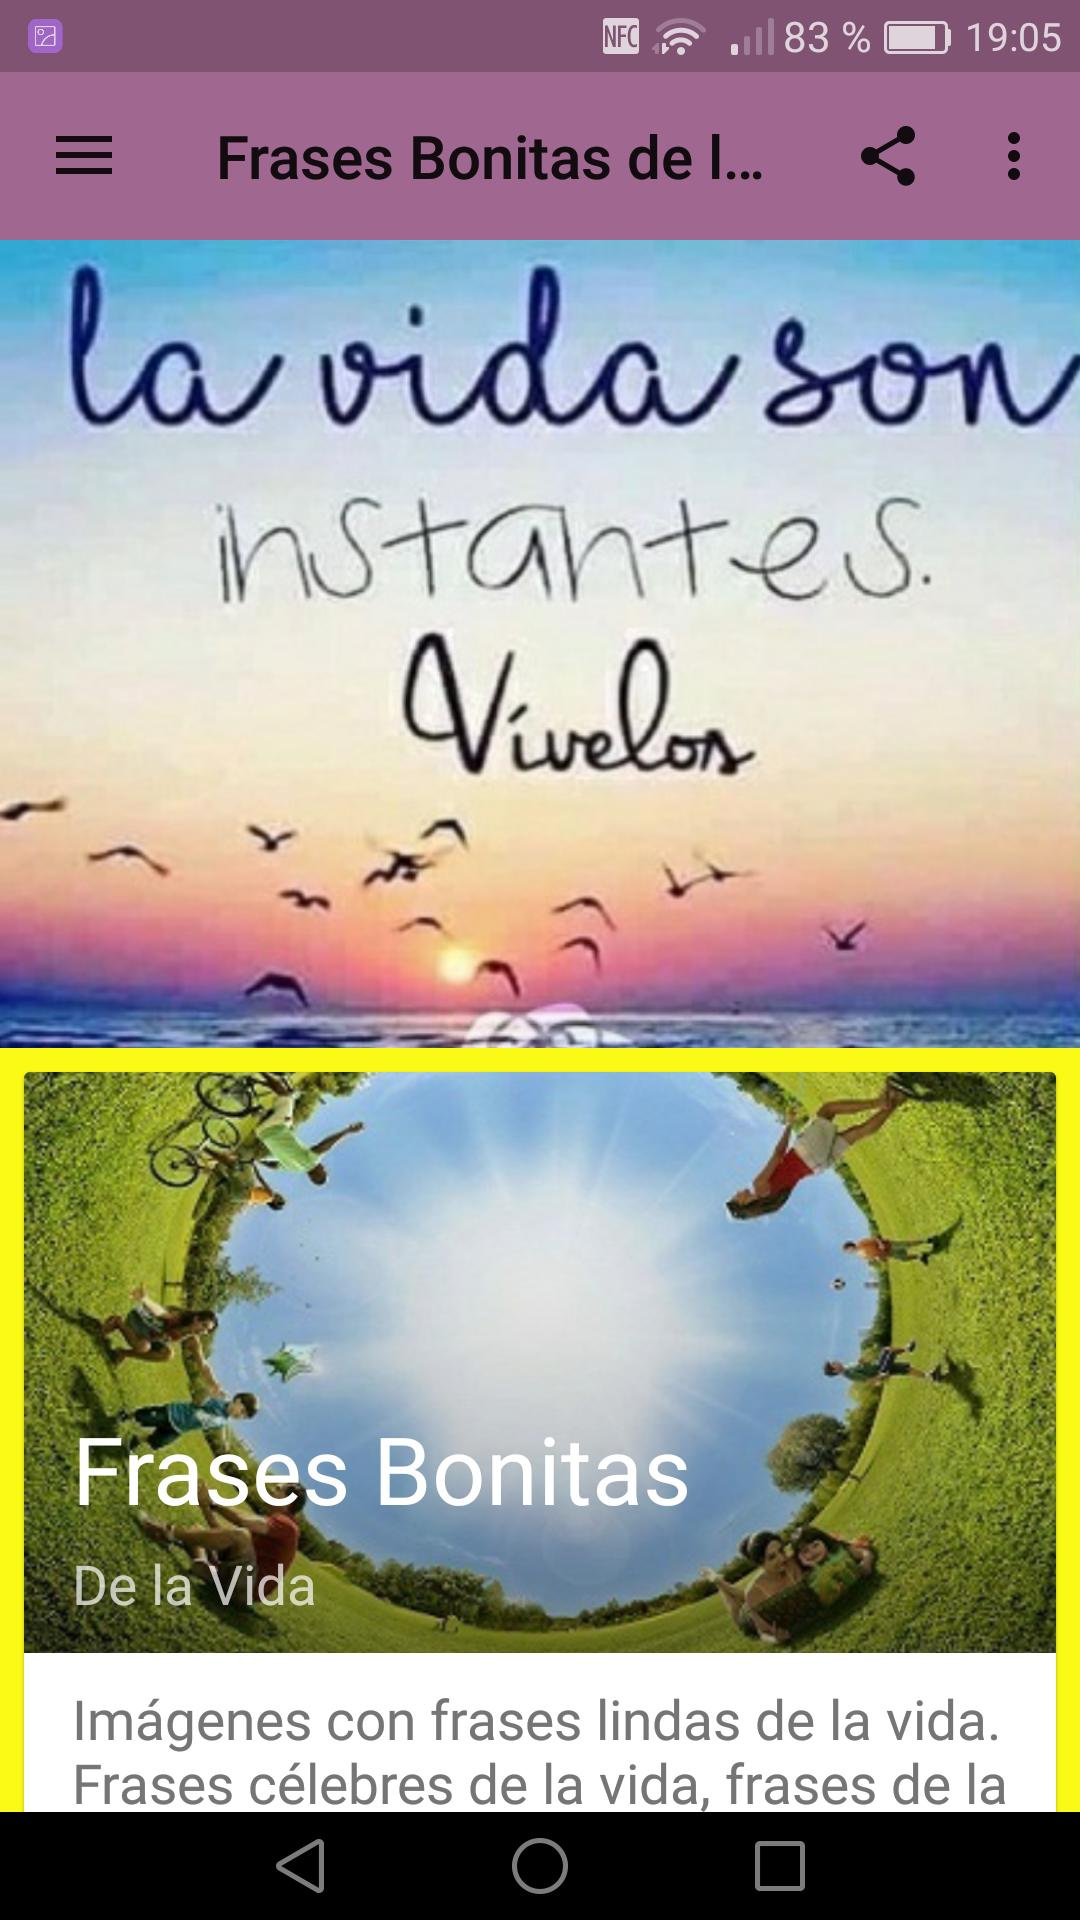 Frases Bonitas De La Vida For Android Apk Download